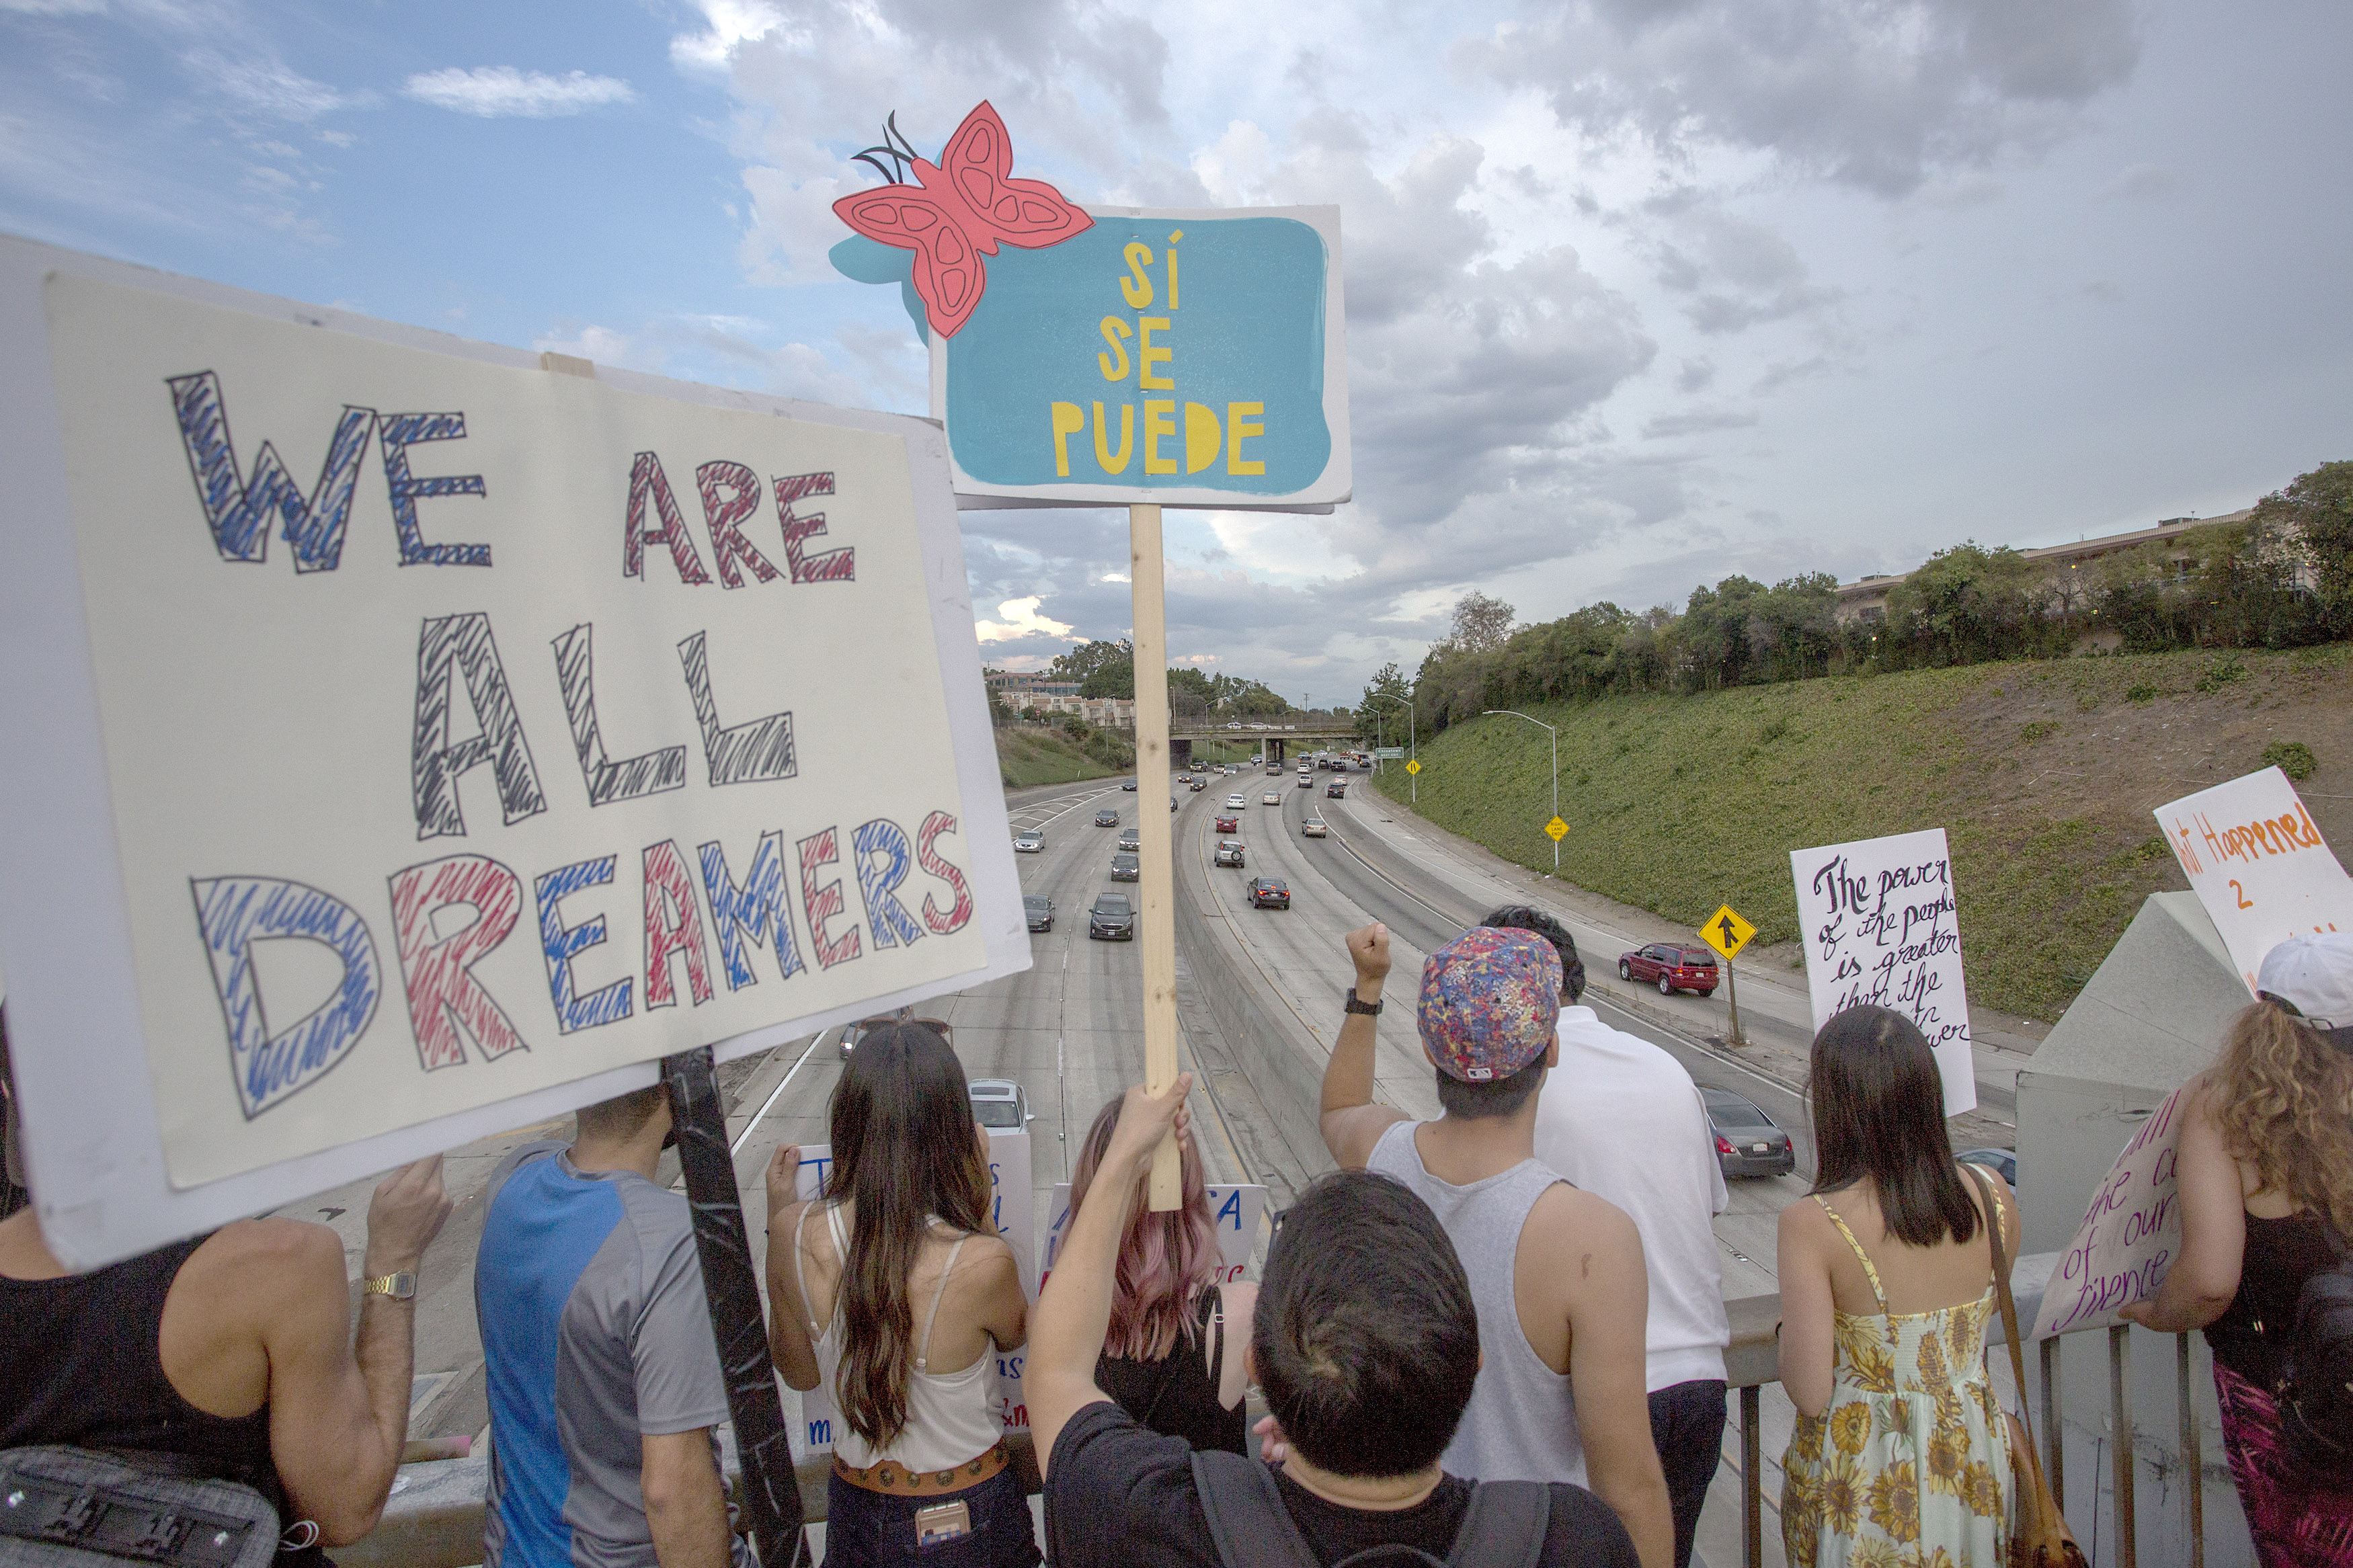 Trump administration must accept new DACA applications, judge orders